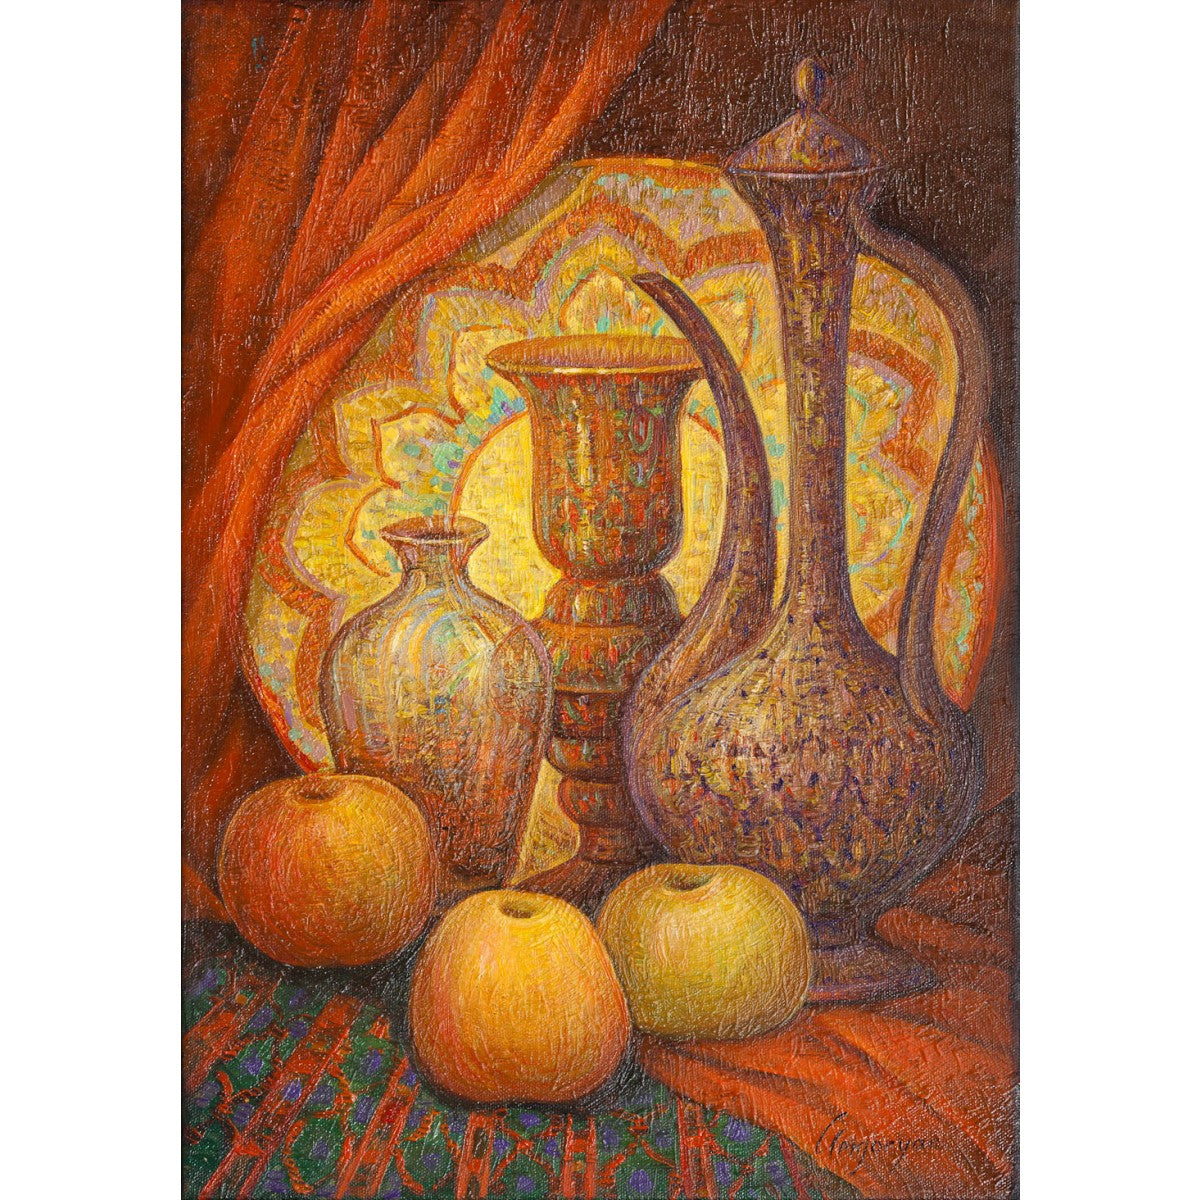 Fruits and Pitchers by Marina Grigoryan